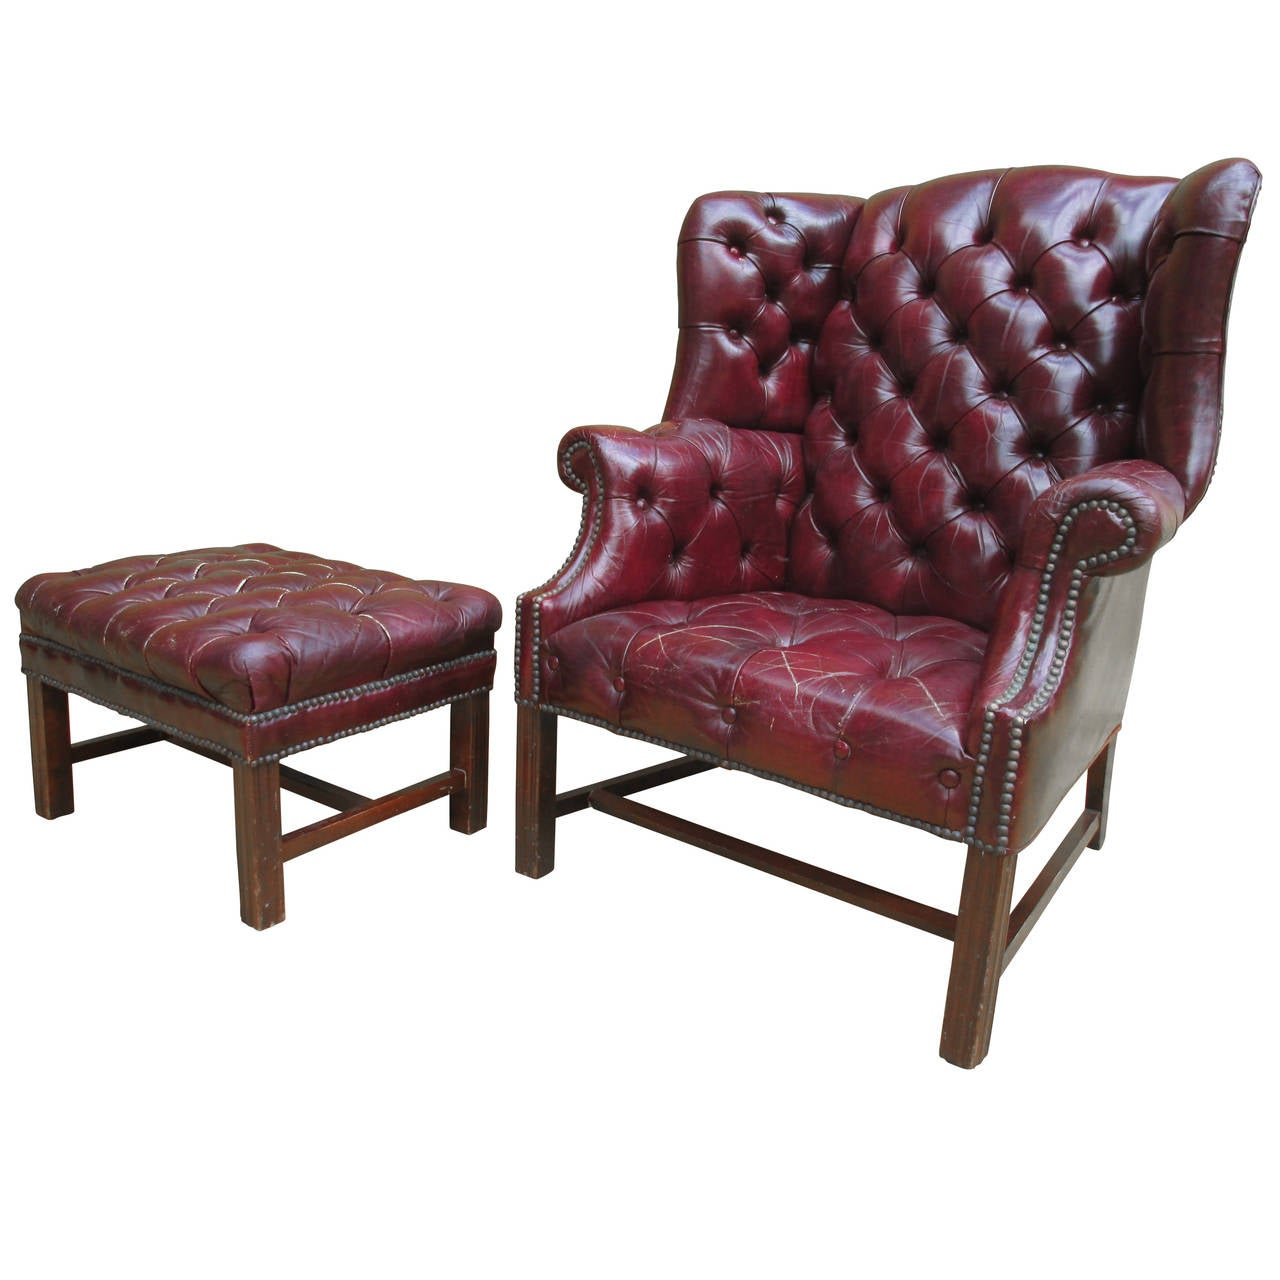 Tufted Wingback Chair and Ottoman at 1stdibs